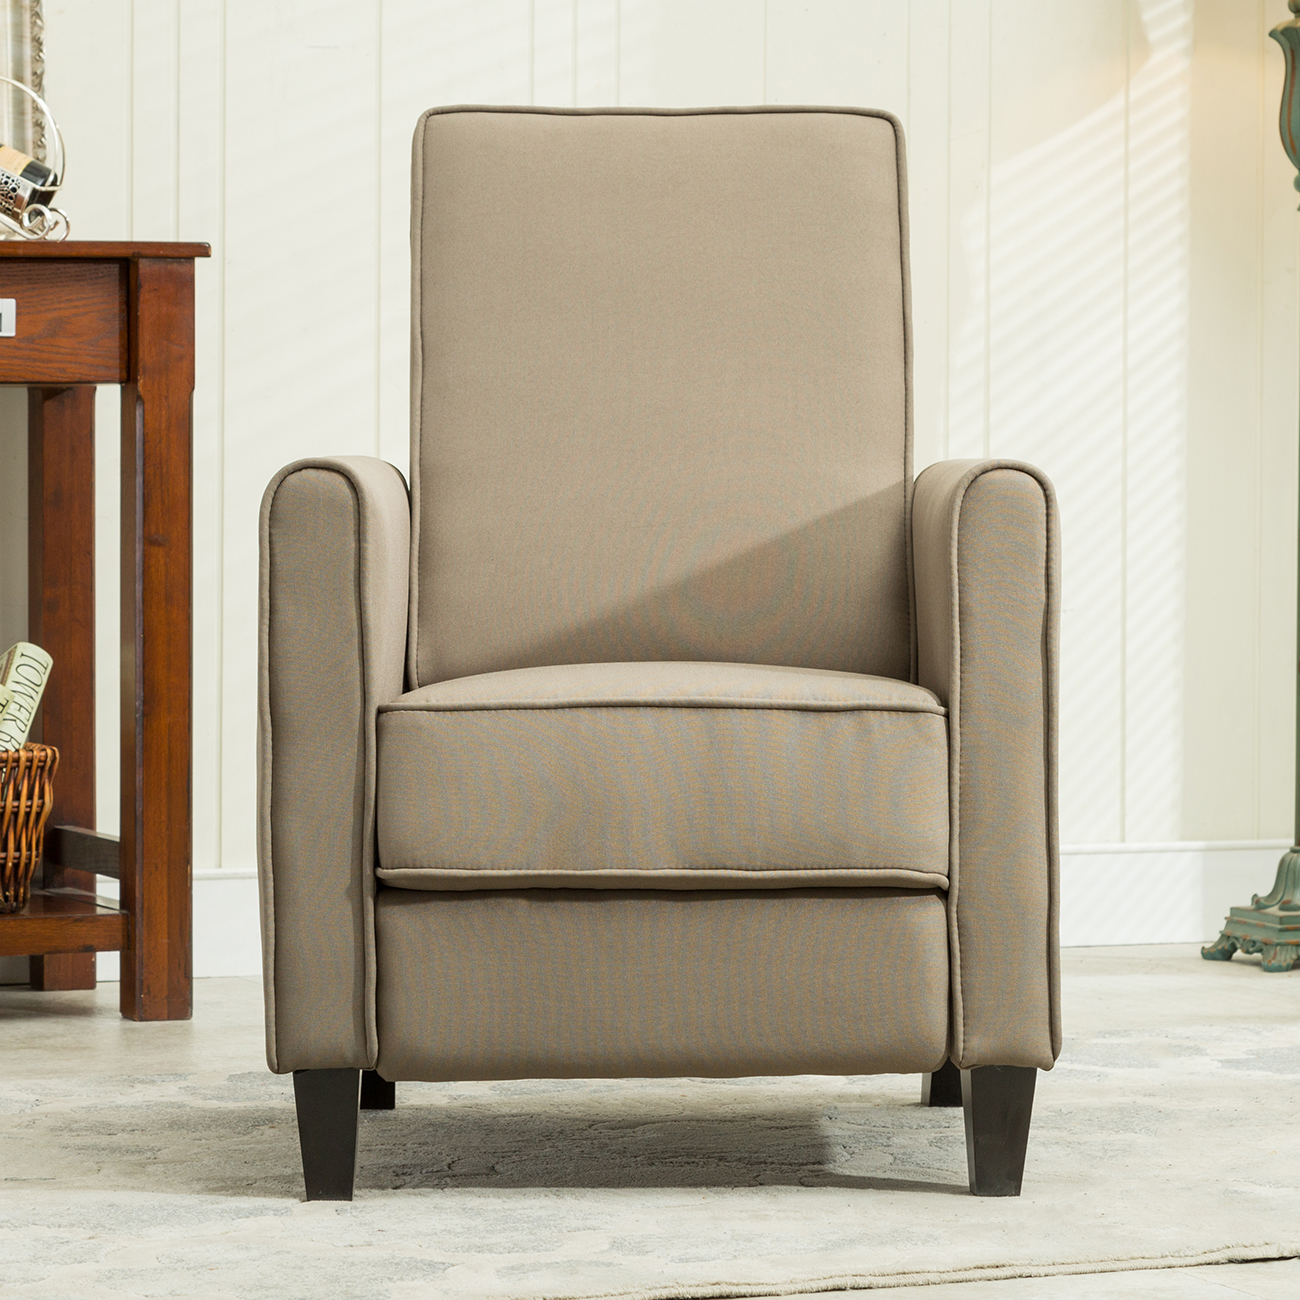 Recliner club chair living room home modern design recline fabric gray beige ebay - Wandspiegel groay modern ...